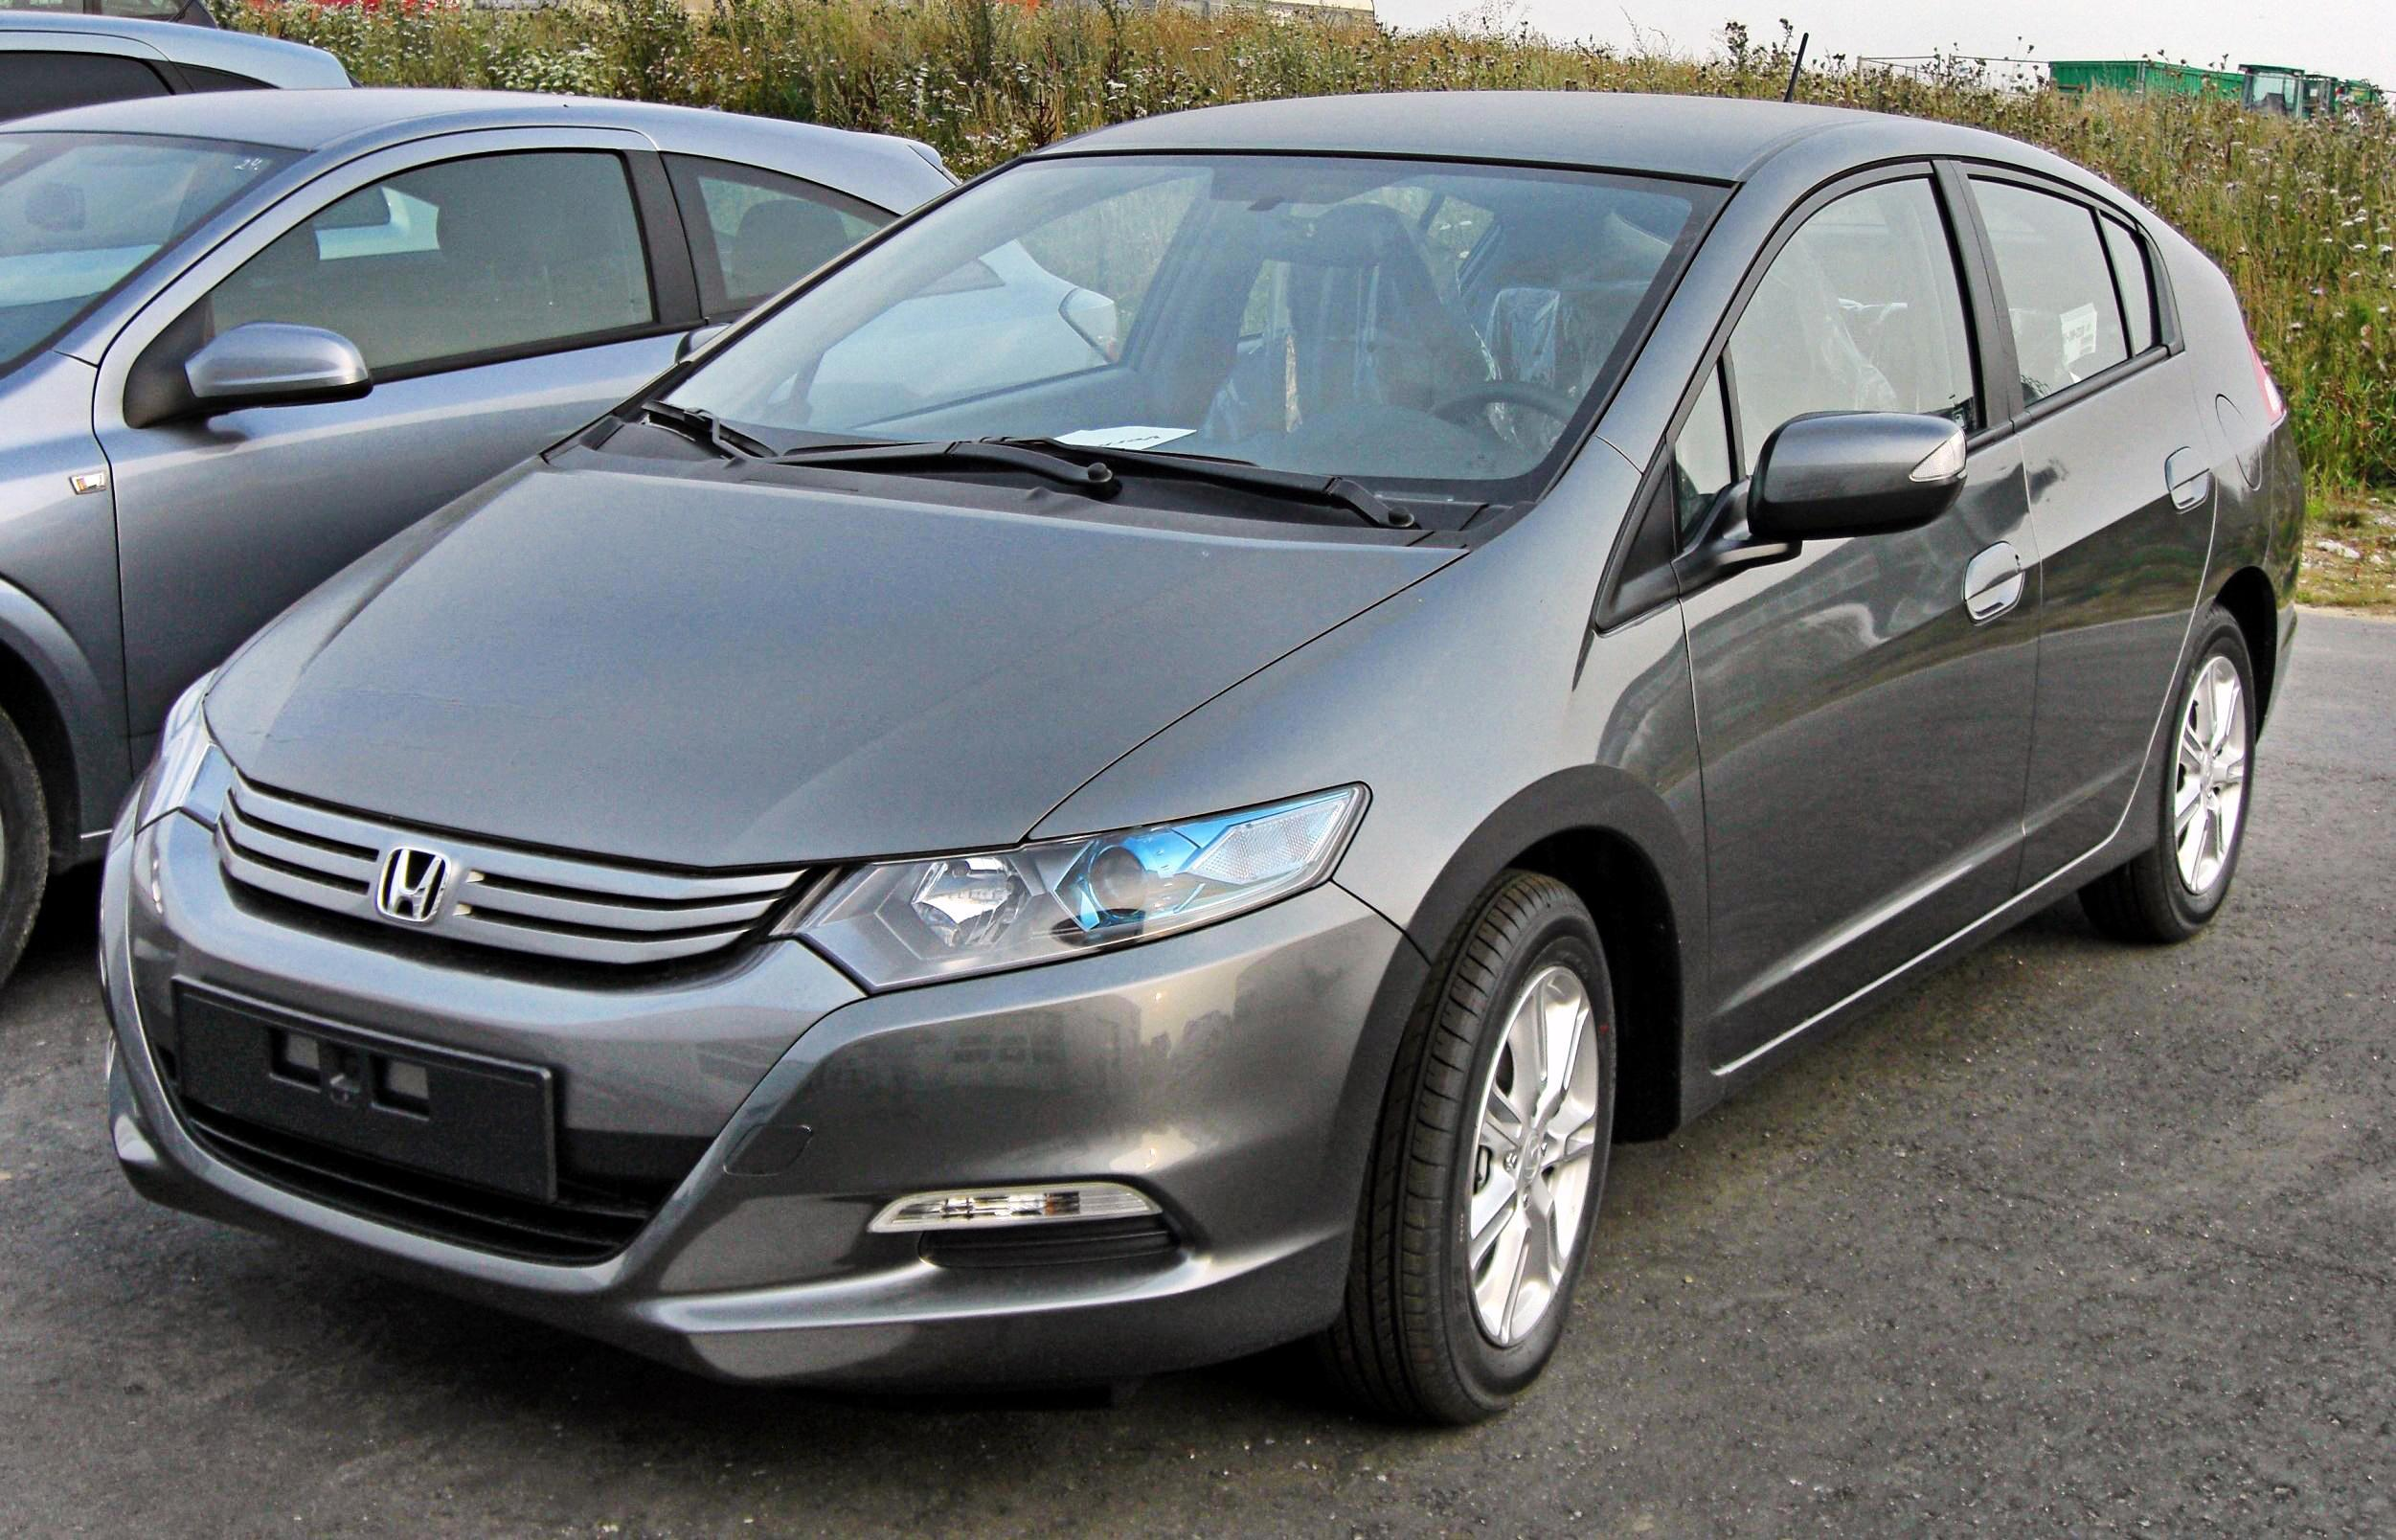 2009 Honda Insight ii - pictures, information and specs - Auto-Database.com